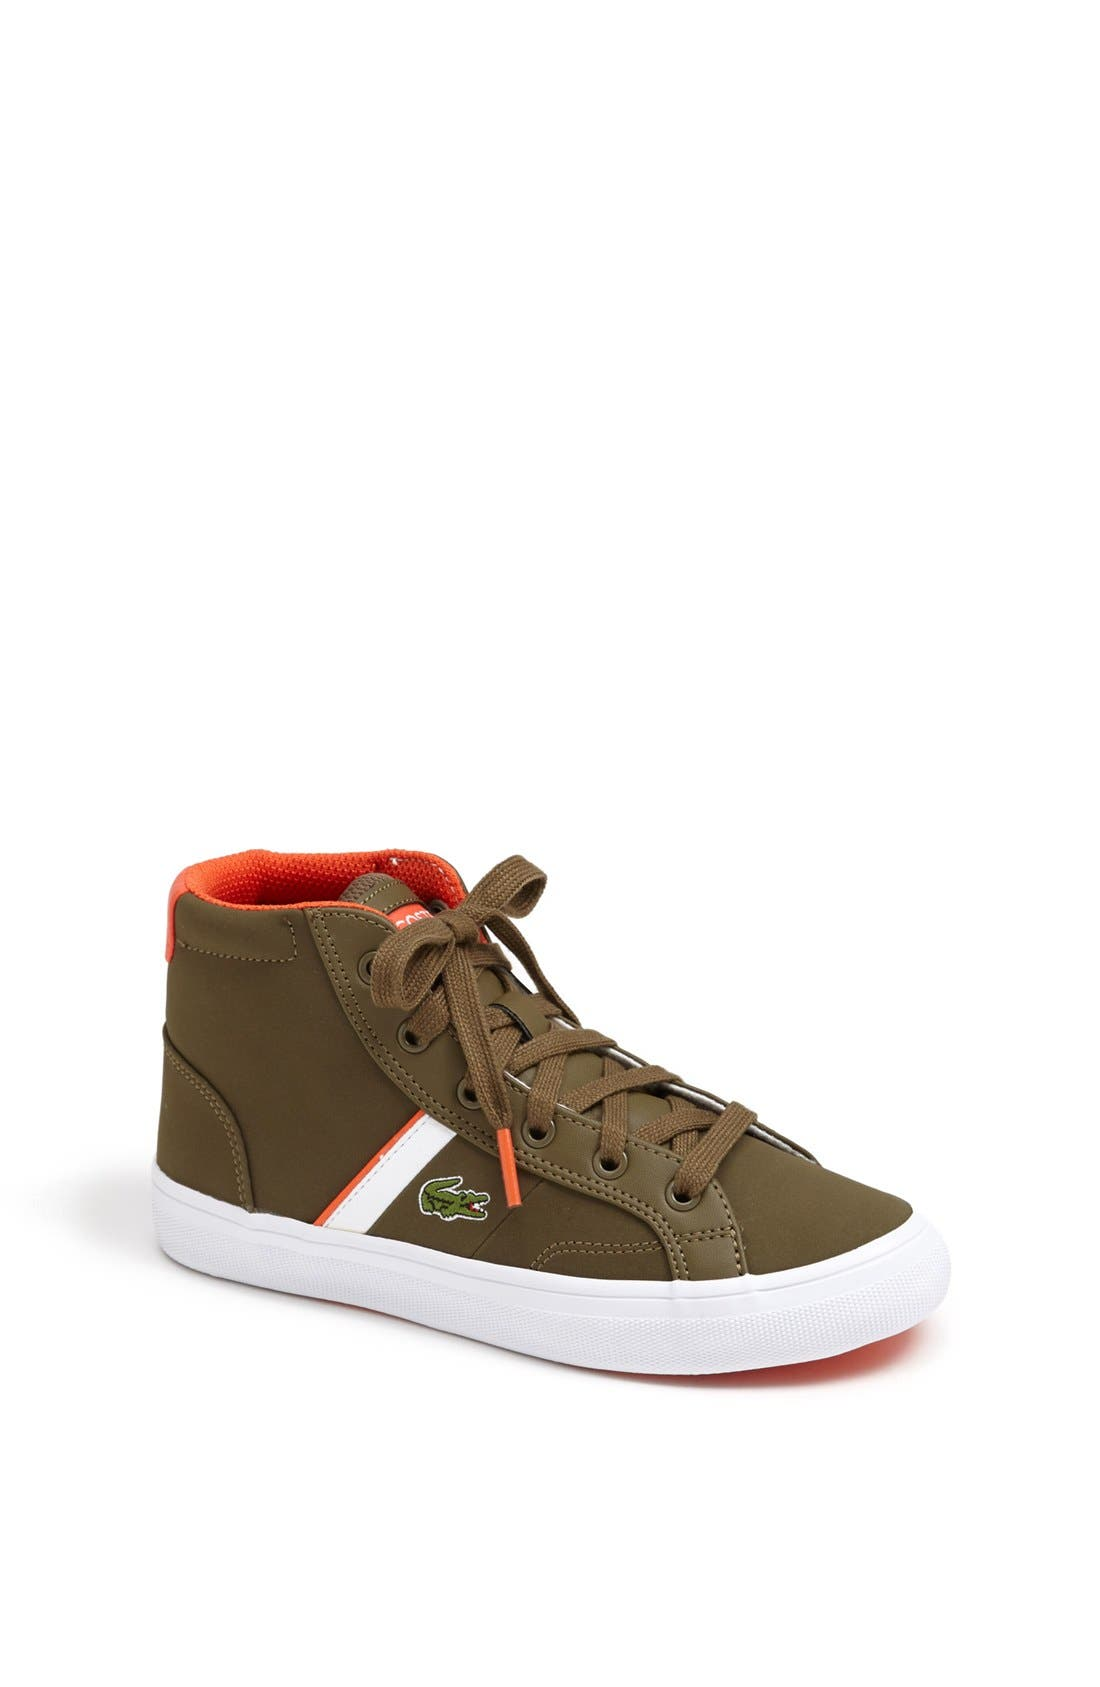 Main Image - Lacoste 'Fairlead' High Top Sneaker (Toddler, Little Kid & Big Kid)